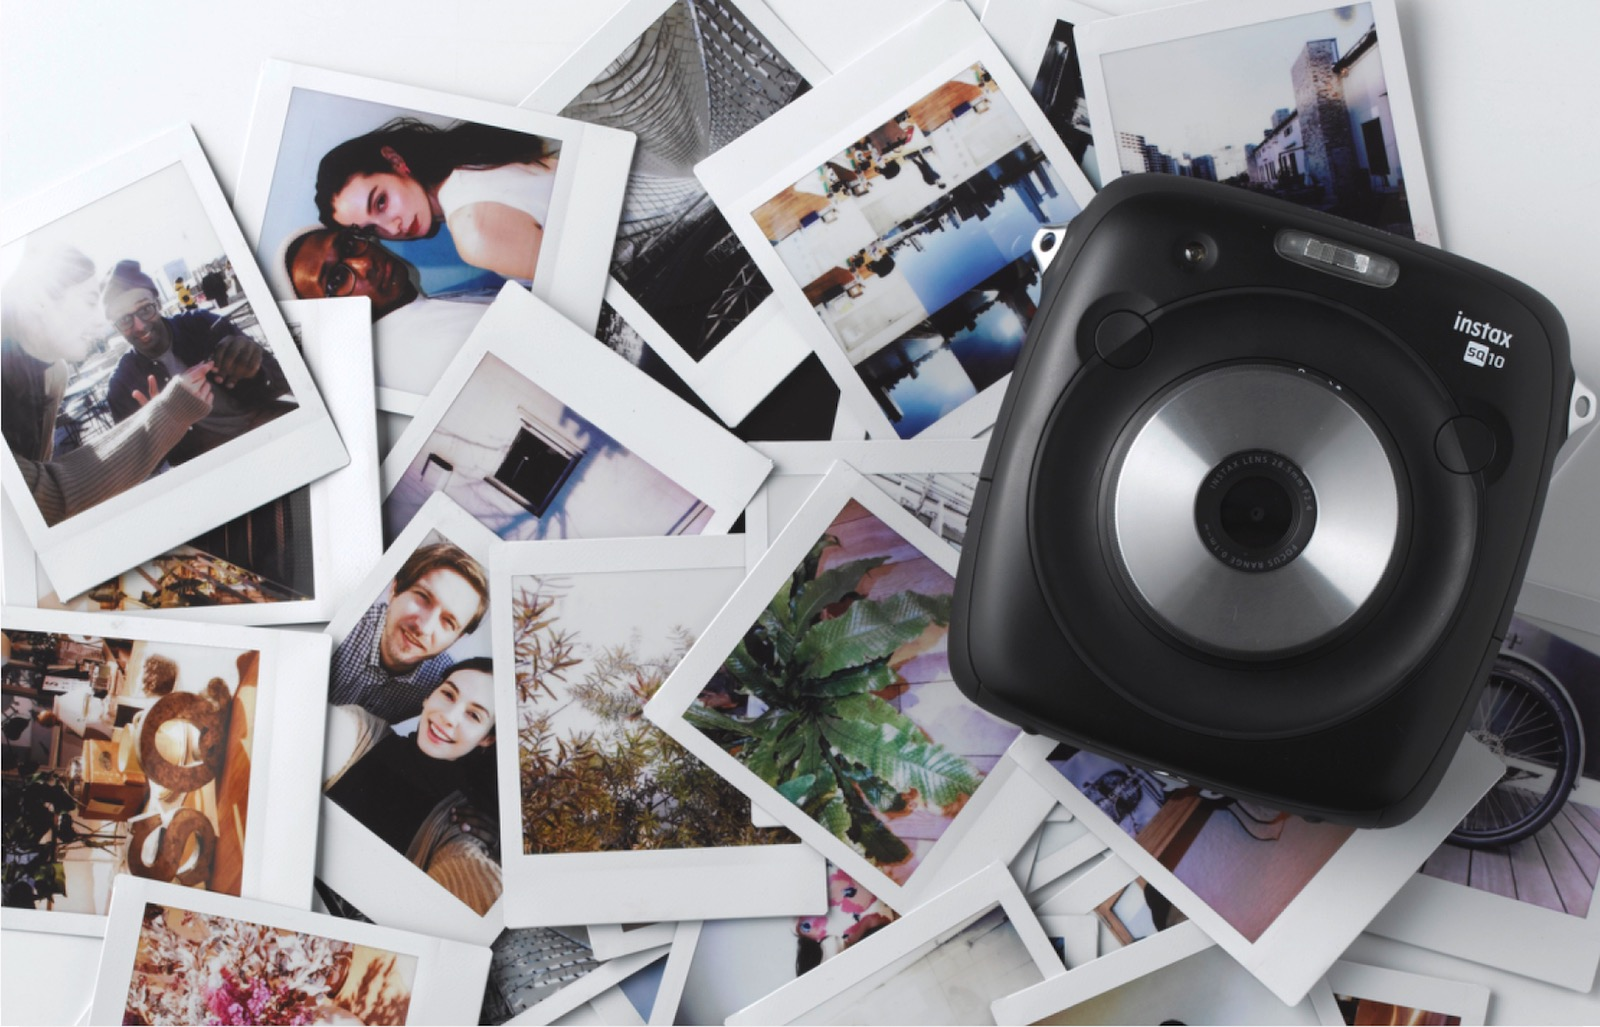 Fujifilm's new Instax camera is half digital, half instant